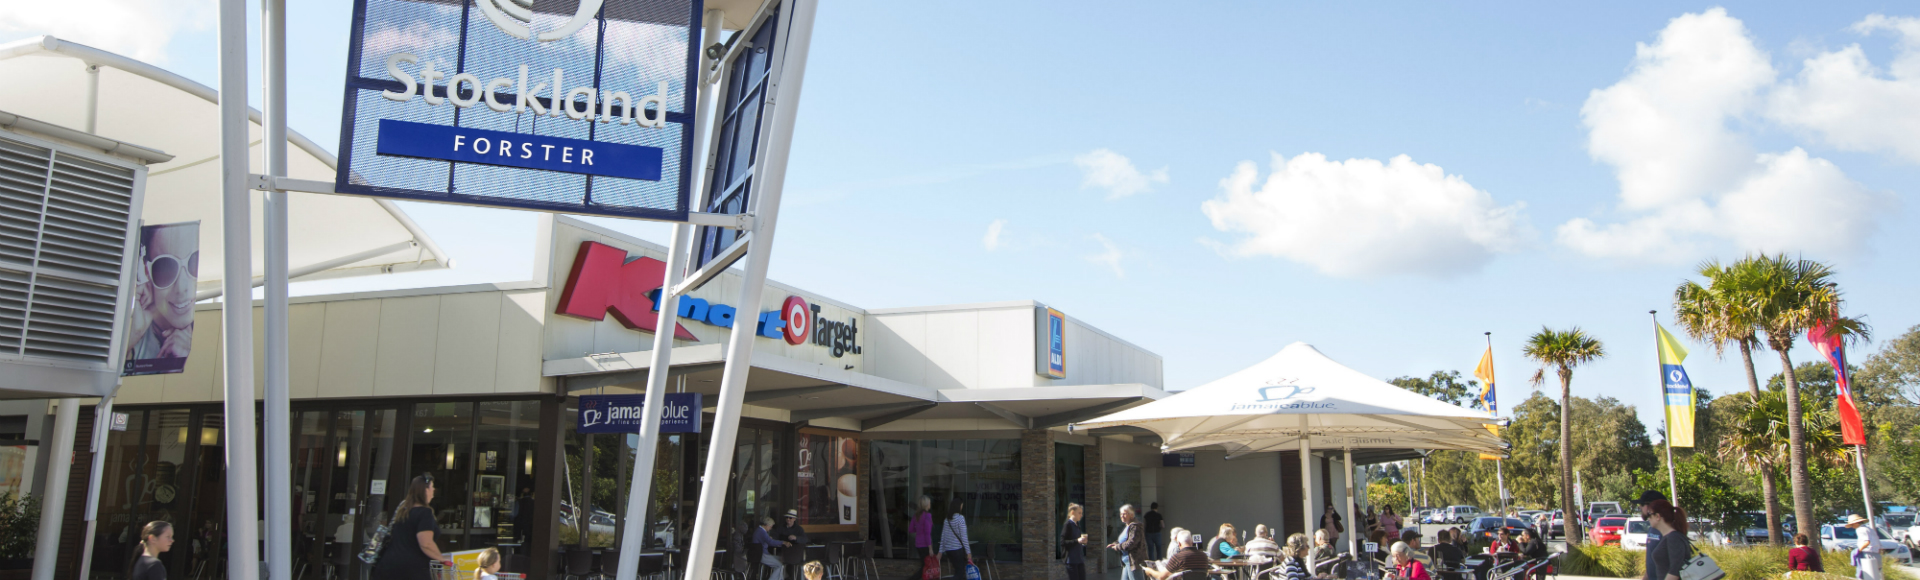 Forster Shopping Centre Main Entrance 1920x580px